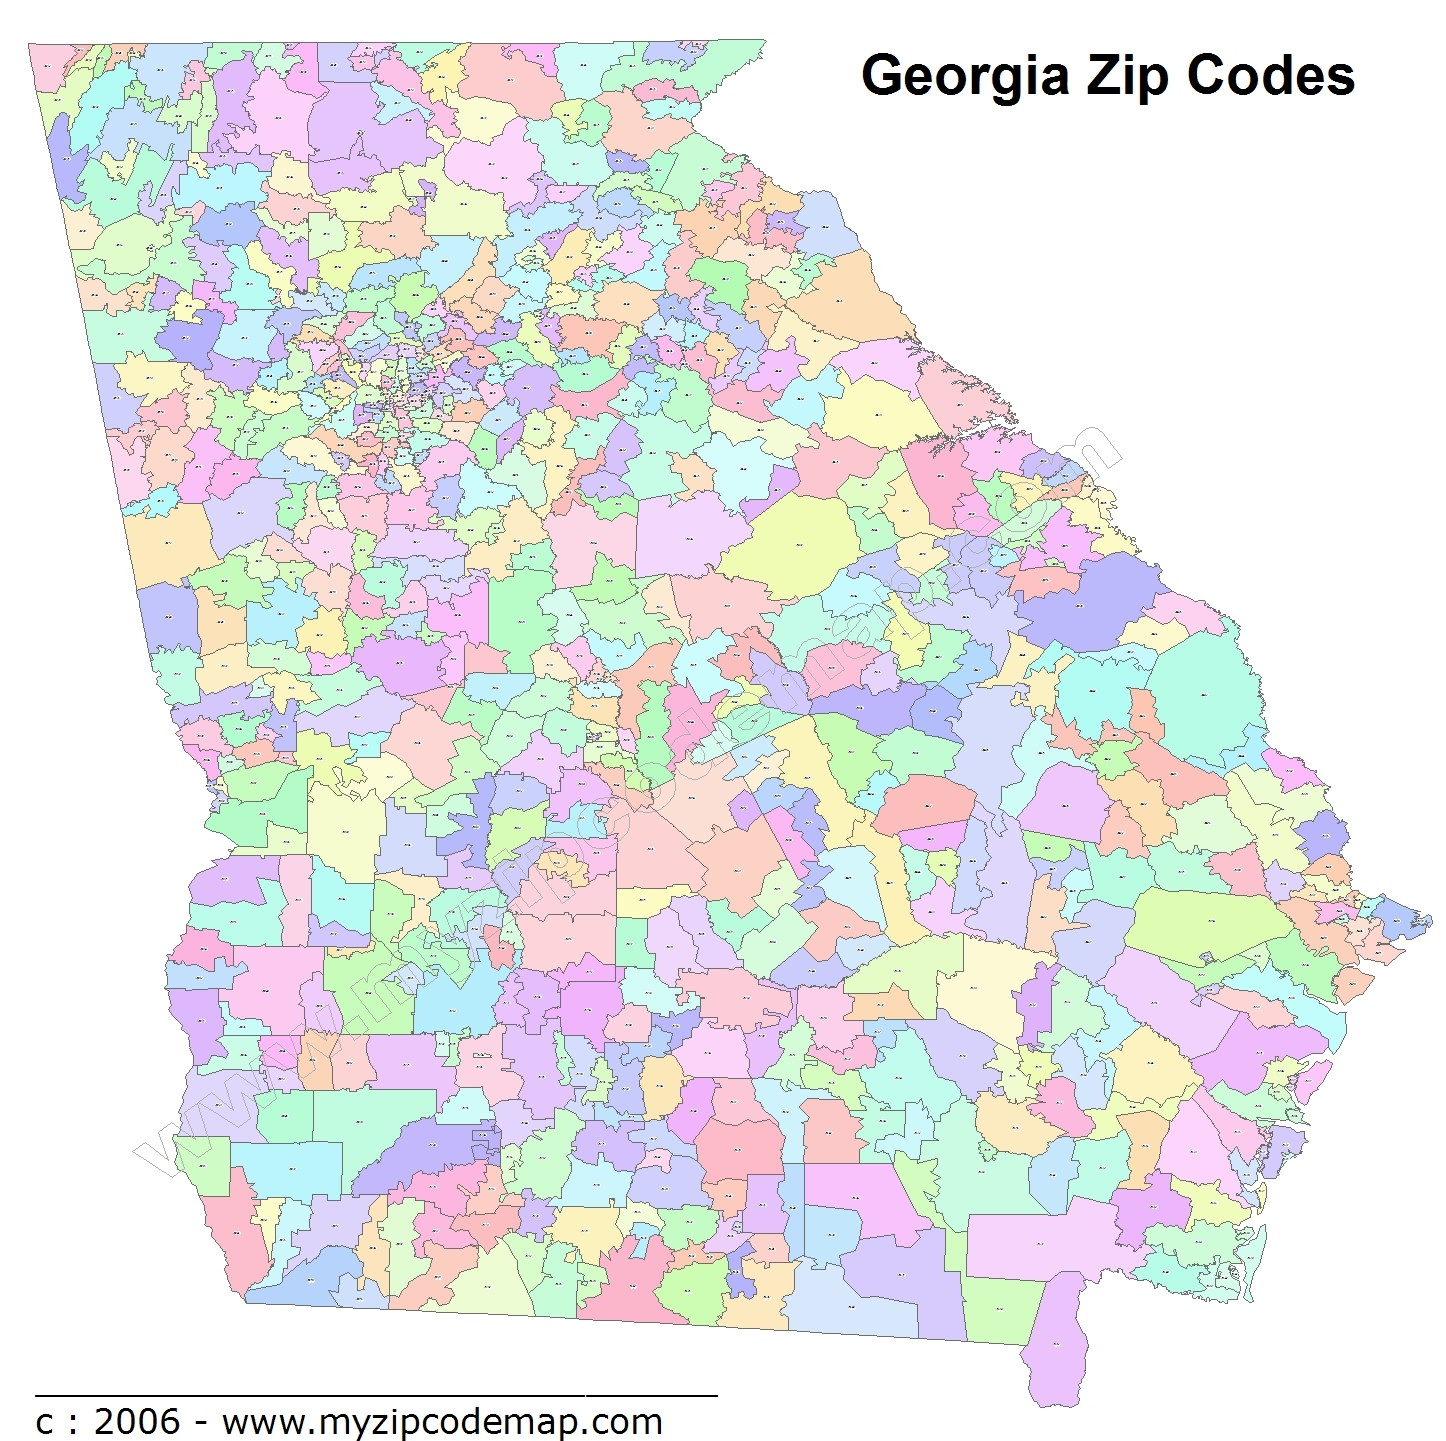 Georgia Zip Code Maps - Free Georgia Zip Code Maps